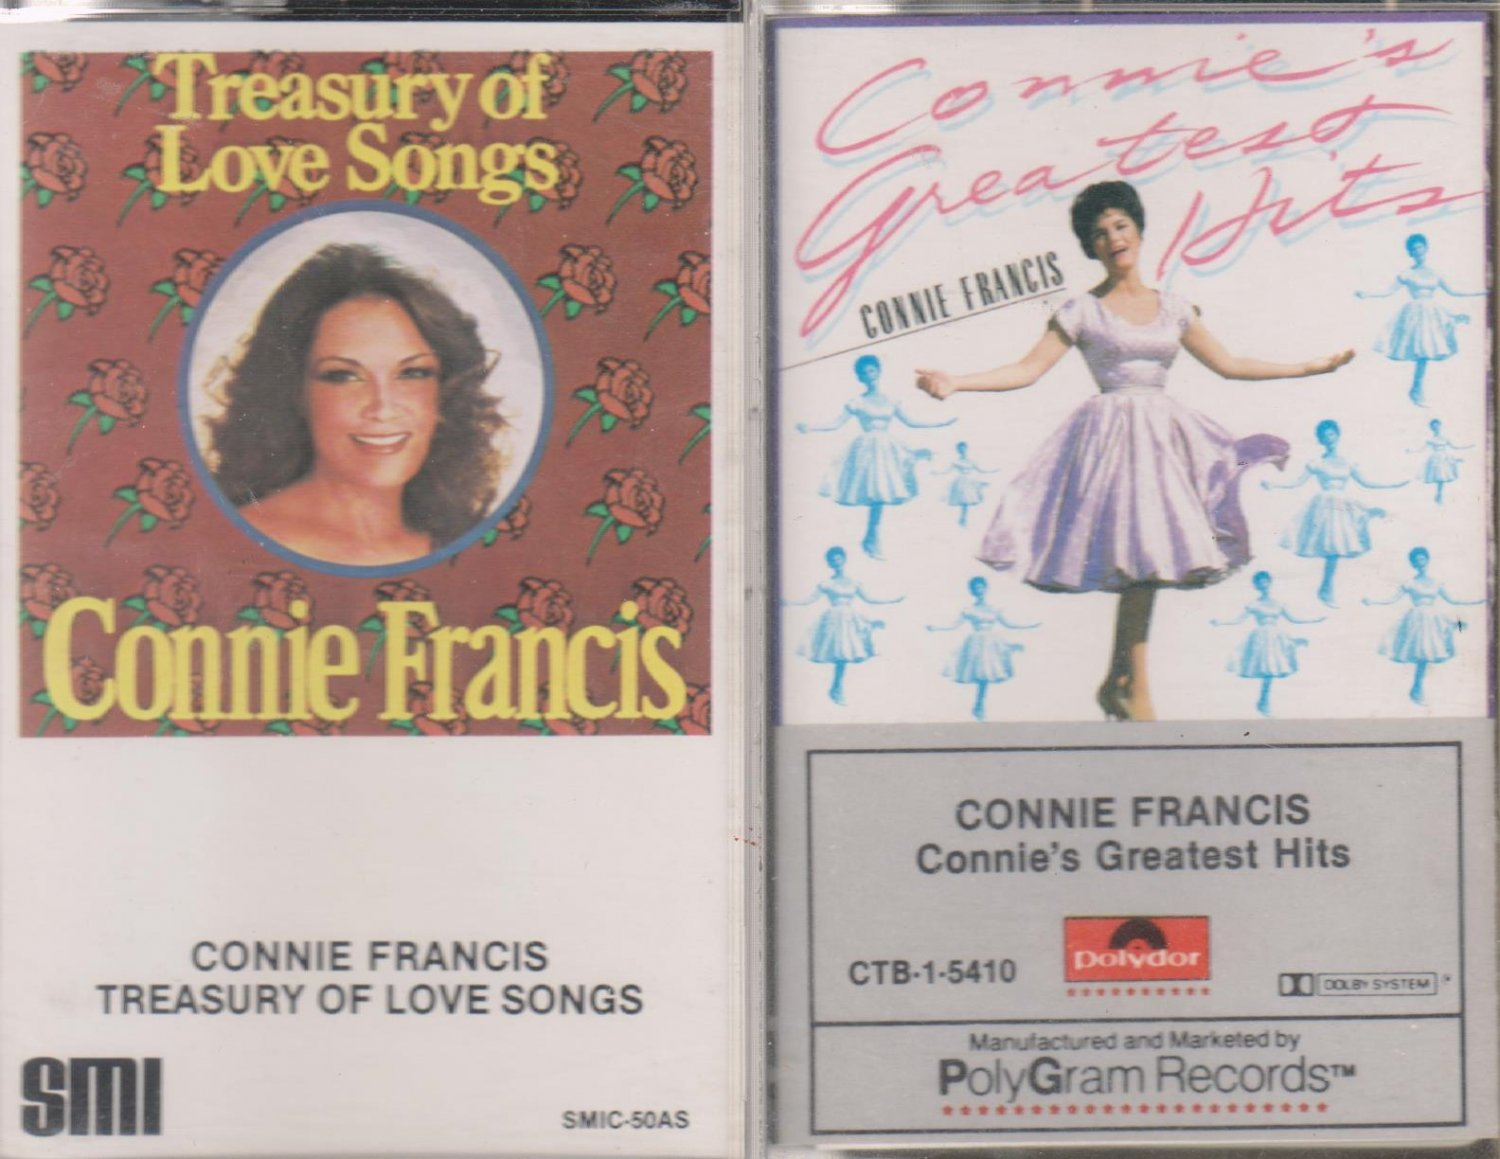 Connie Francis Love Songs/Greatest Hits (2.99)